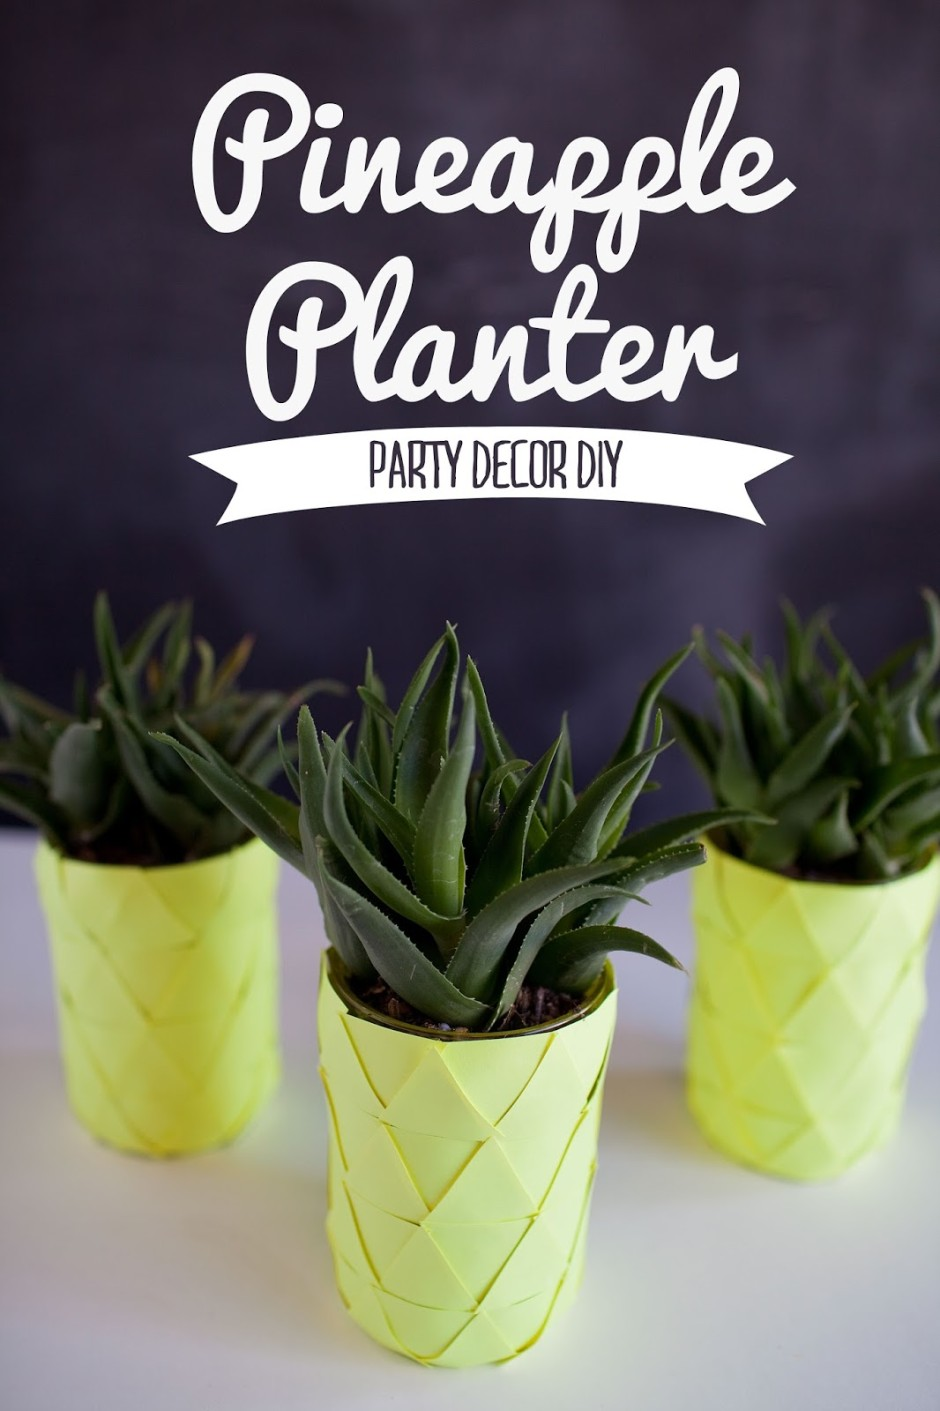 PINEAPPLE-planter